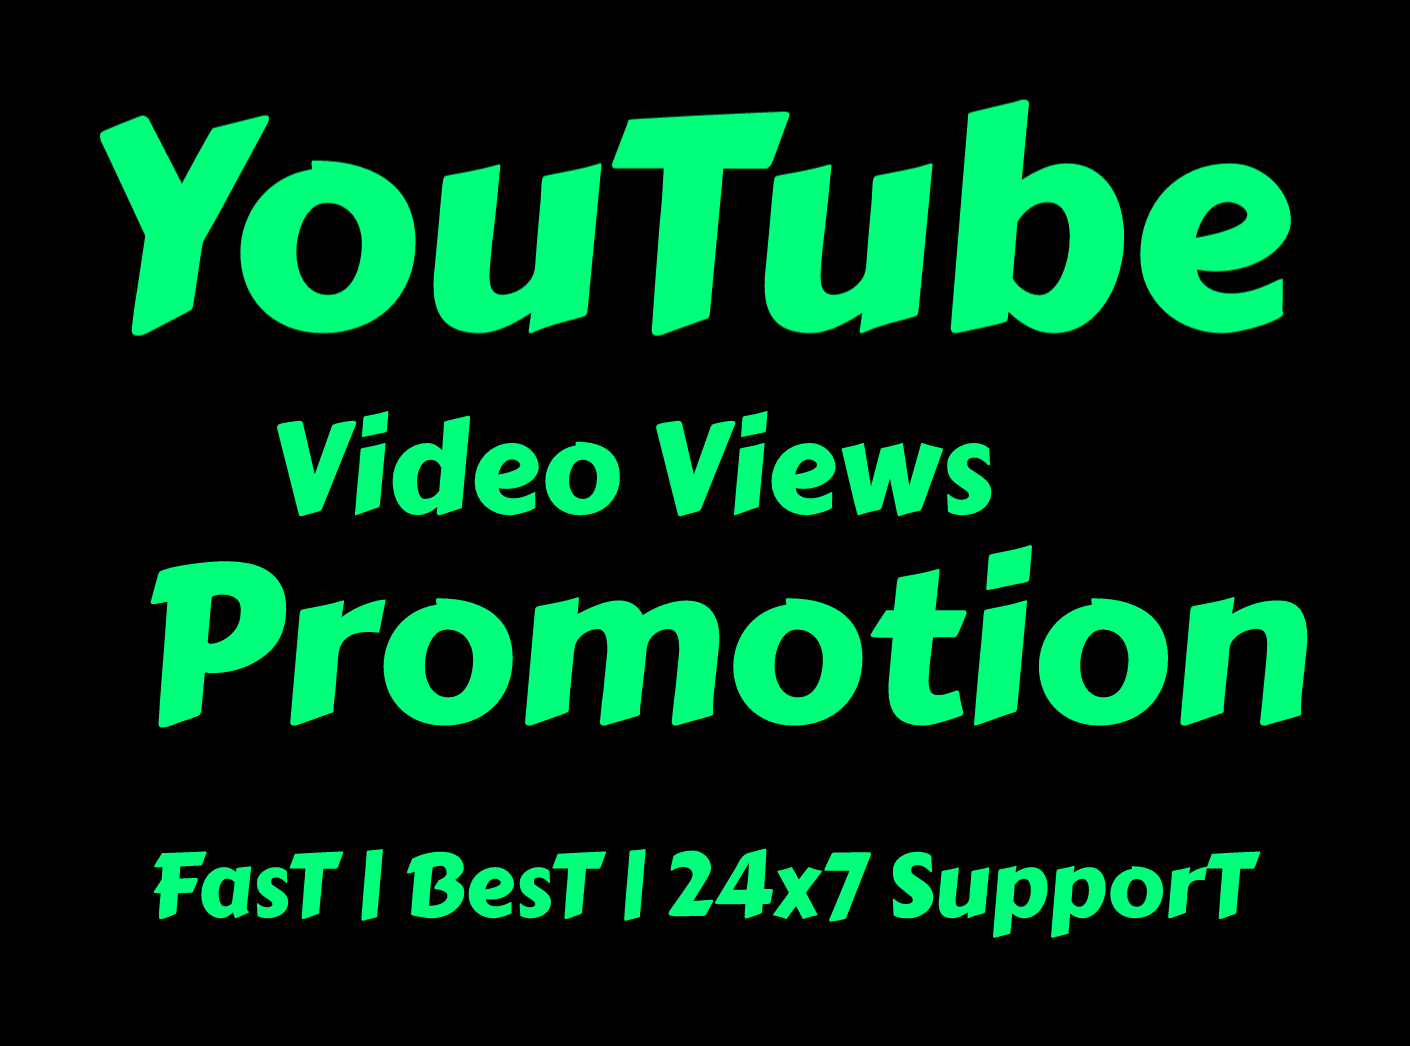 HIGH QUALITY Service Super Fast Views Impressions